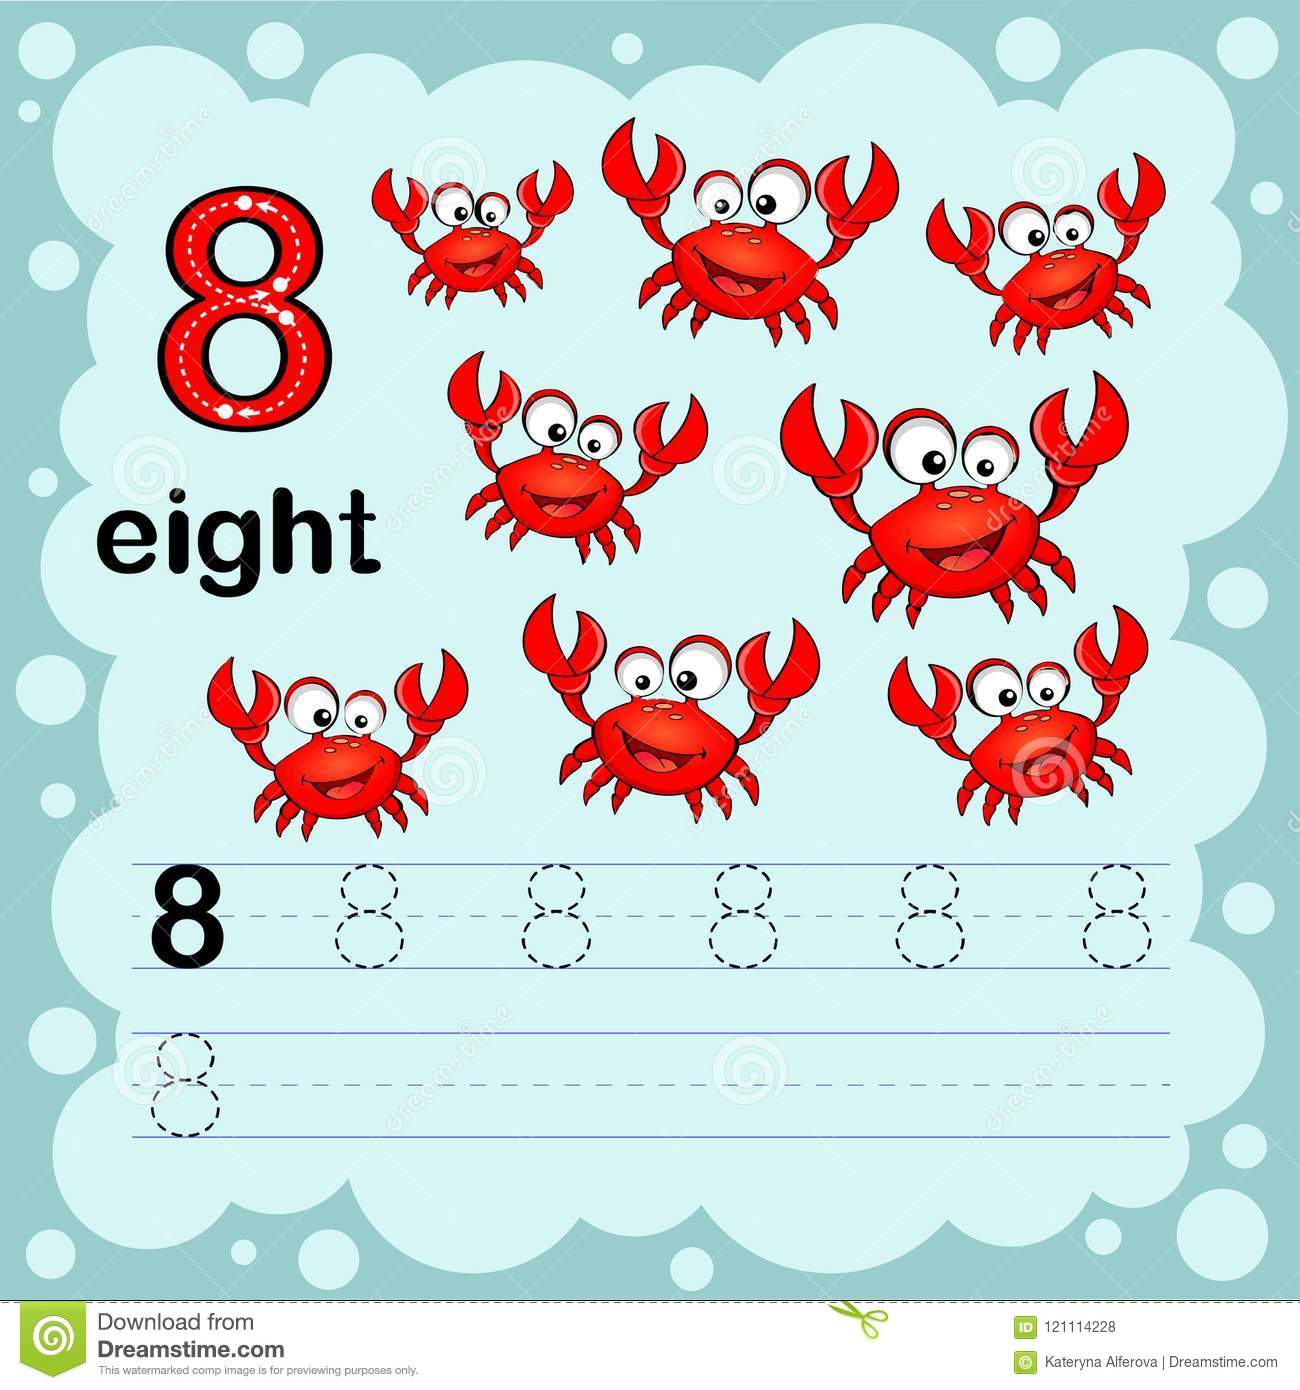 Educational Illustration To Learn How To Count And Write A